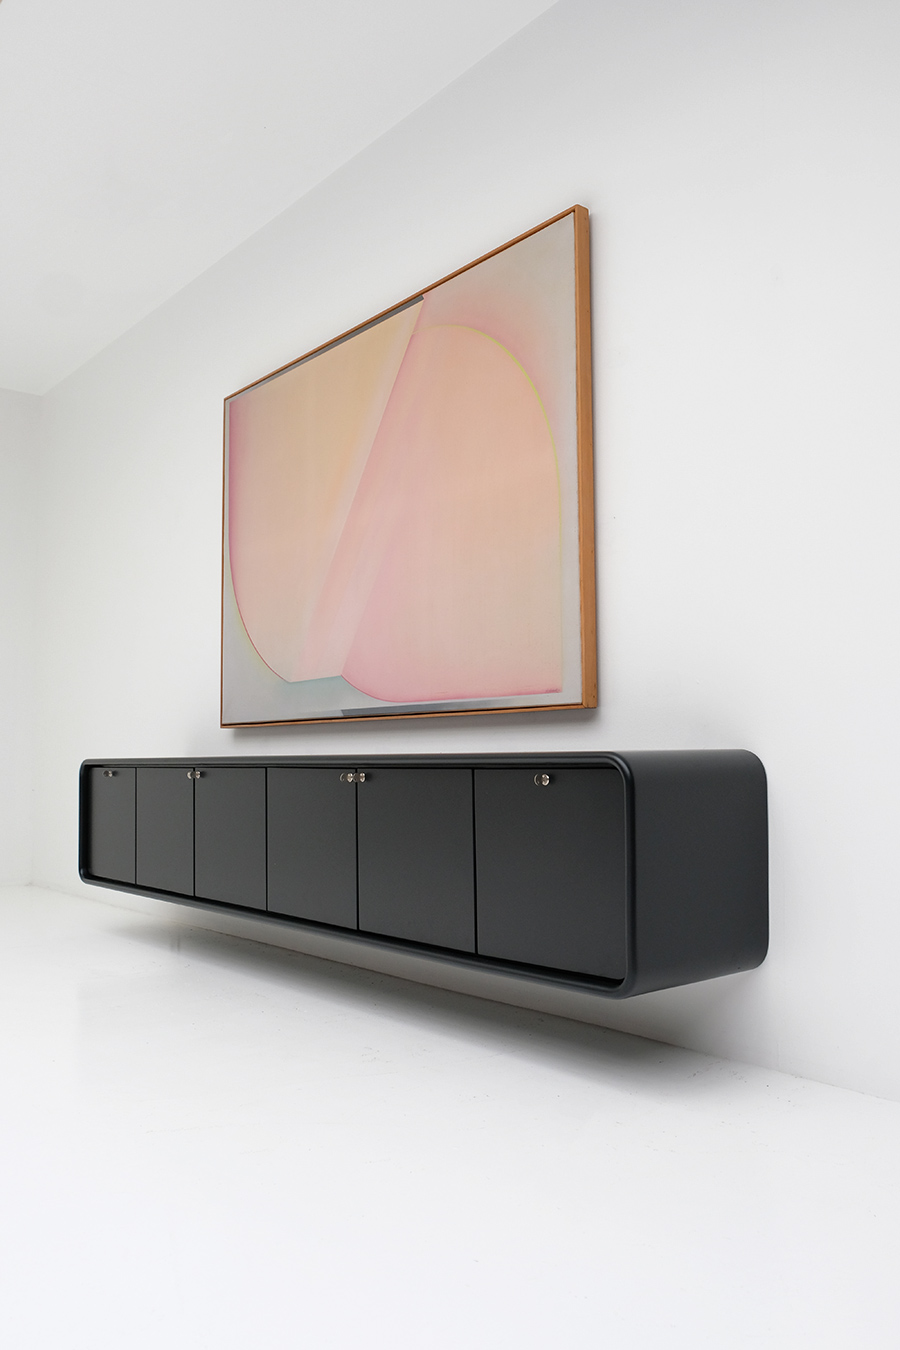 floating space age sideboard image 11